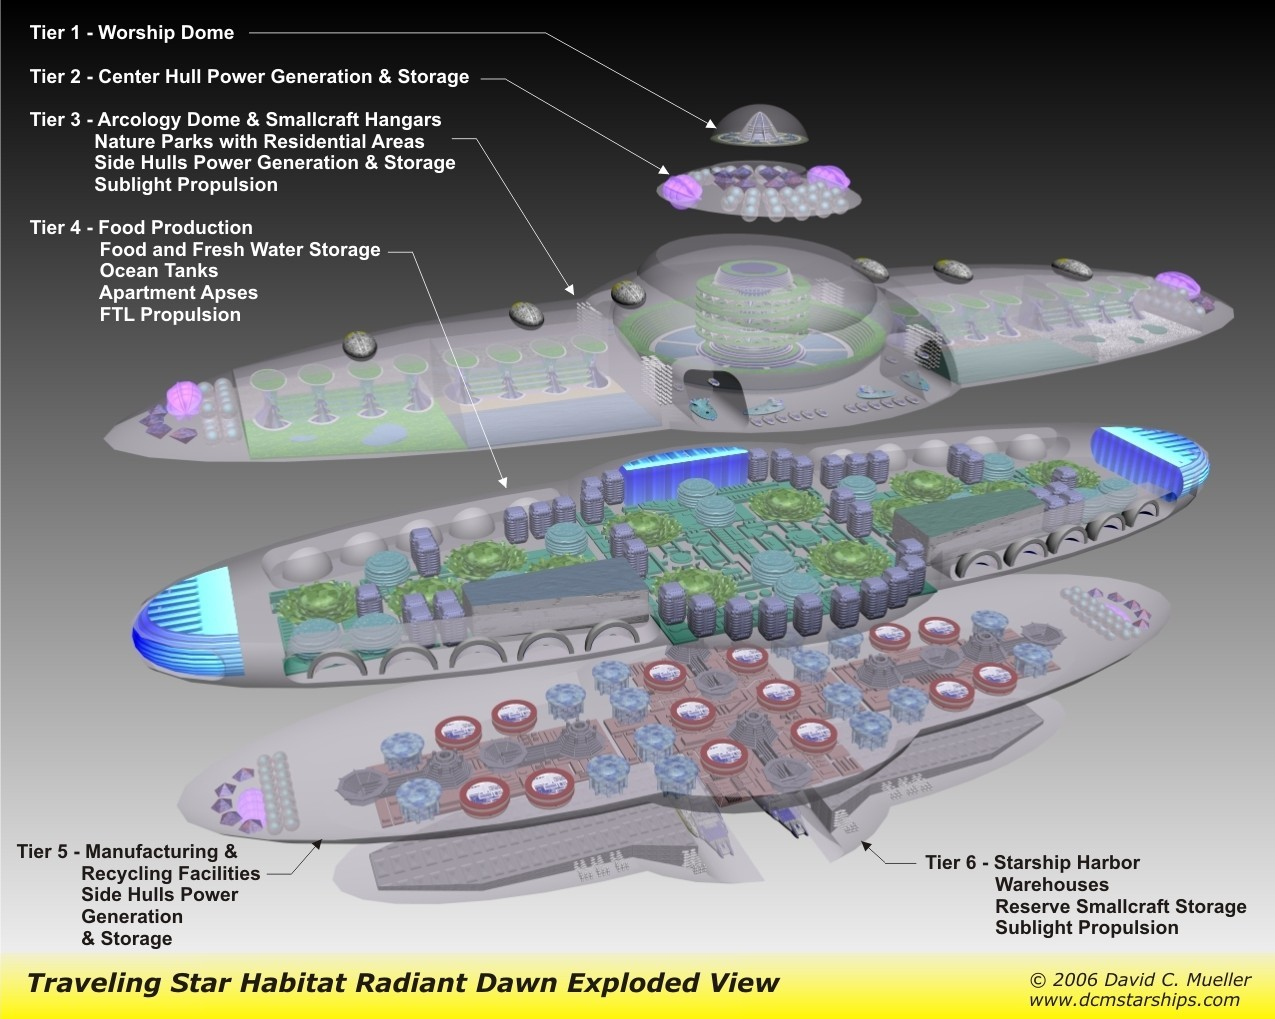 Traveling Star Habitat Radiant Dawn Exploded View